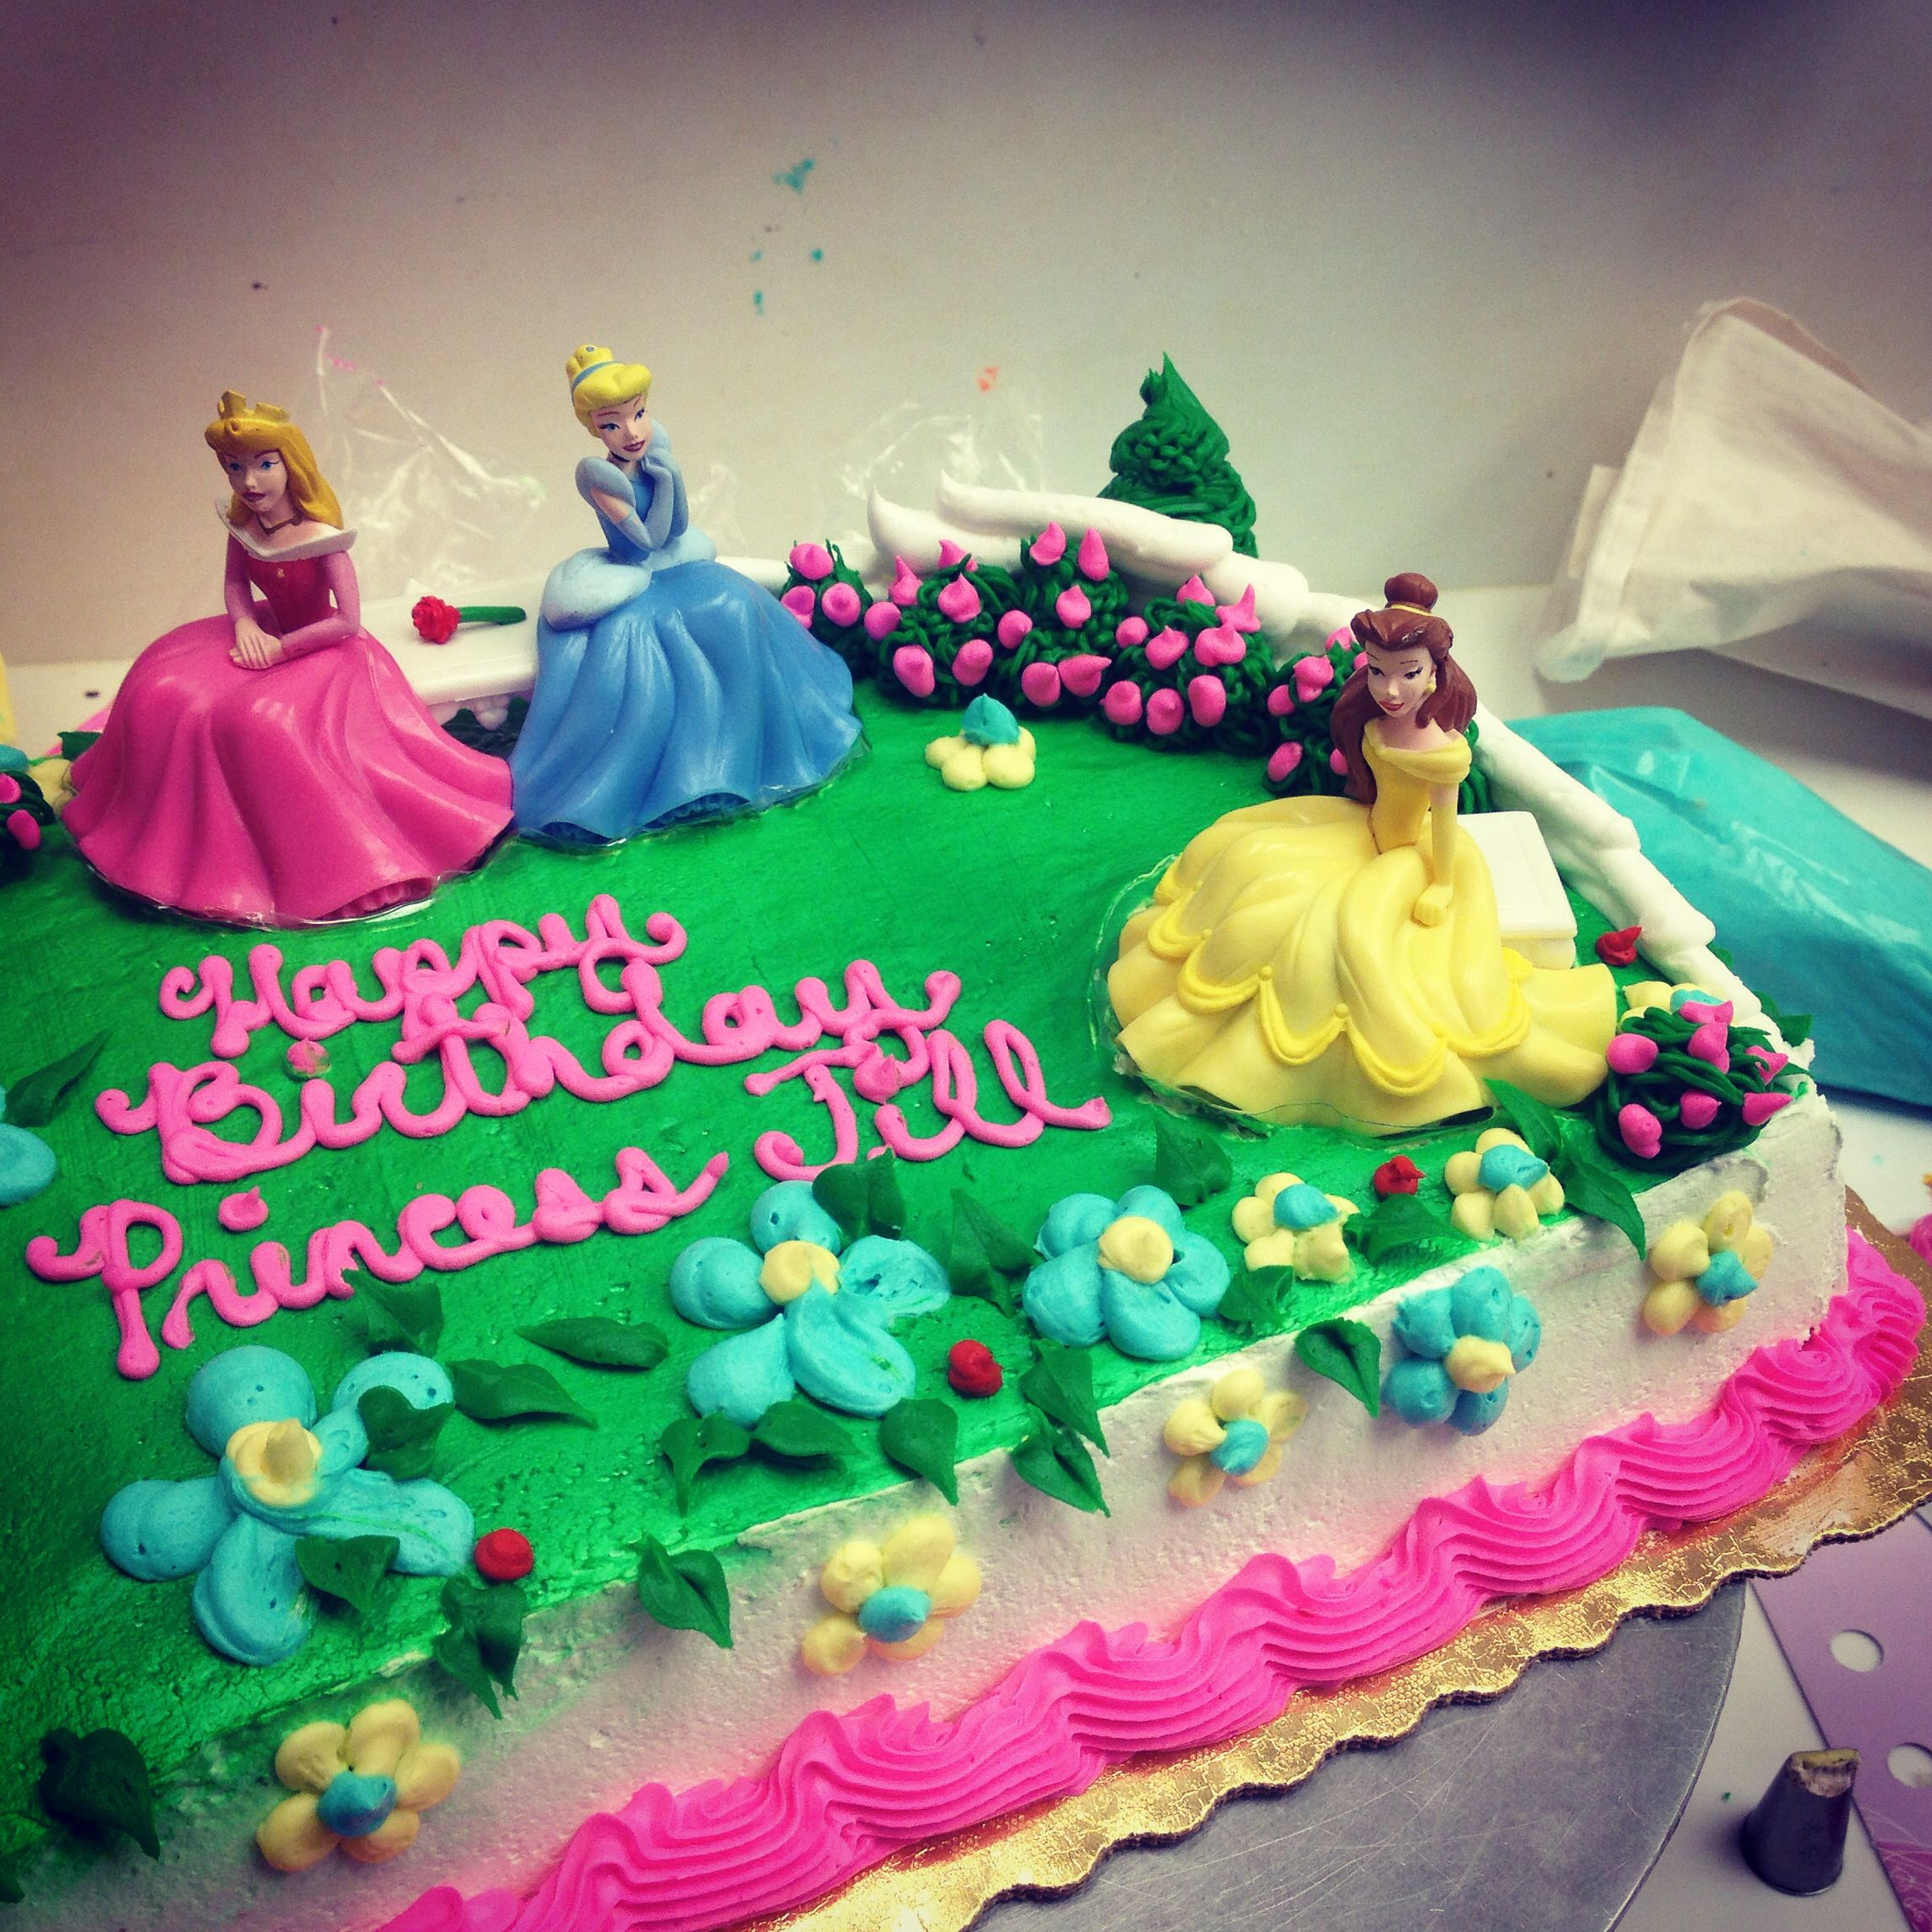 Buttercream Disney Princess Sheet Cake Disney Princess Birthday